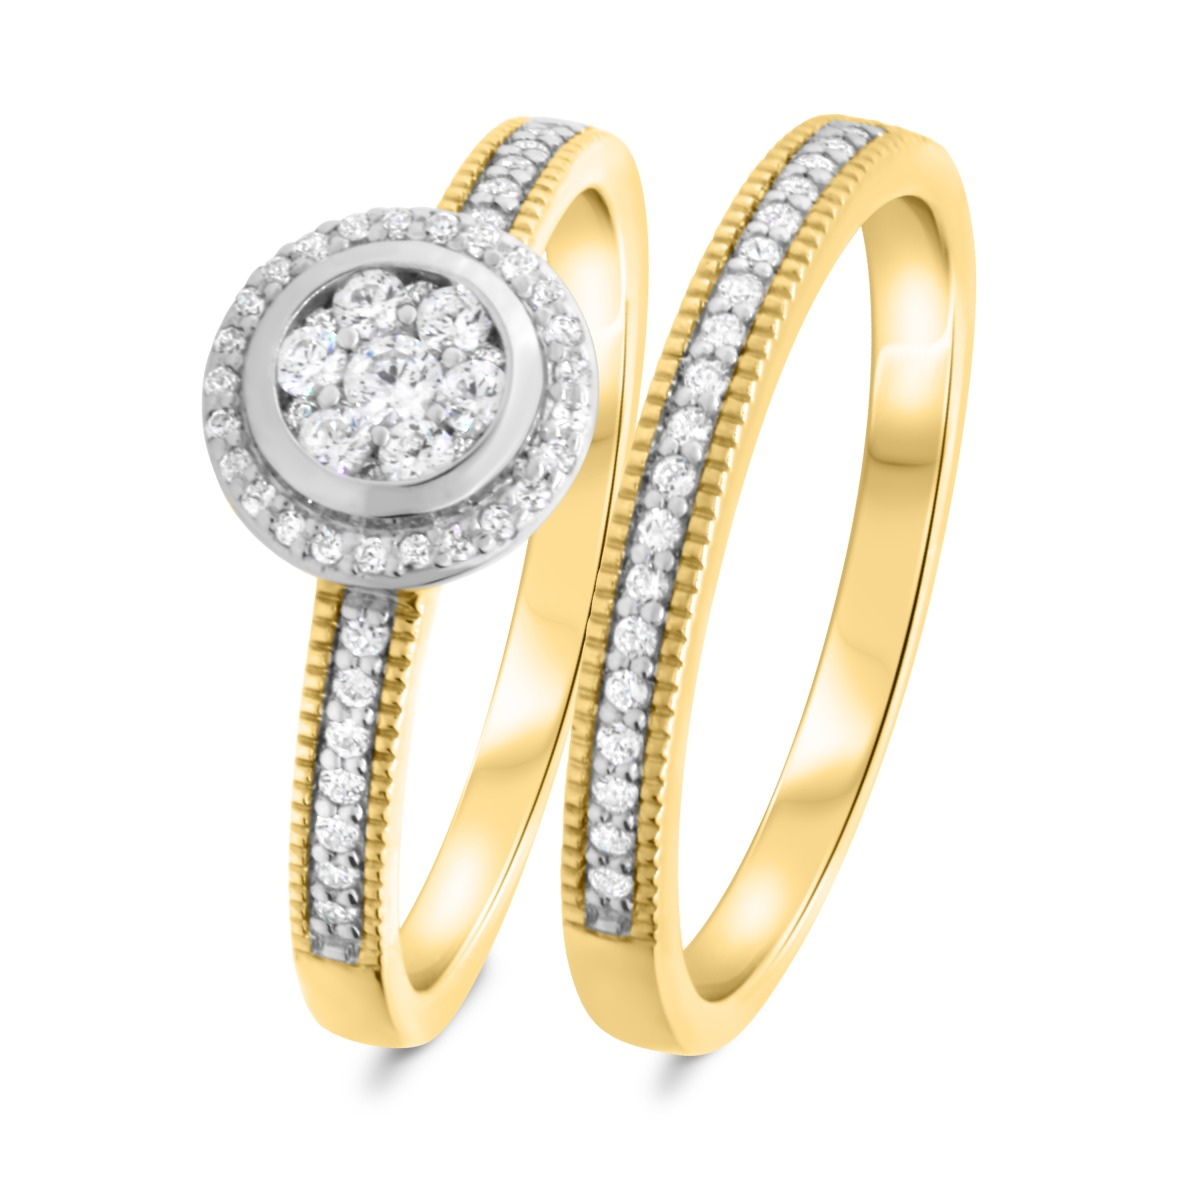 1/2 CT. T.W. Diamond Matching Bridal Ring Set 14K Yellow Gold